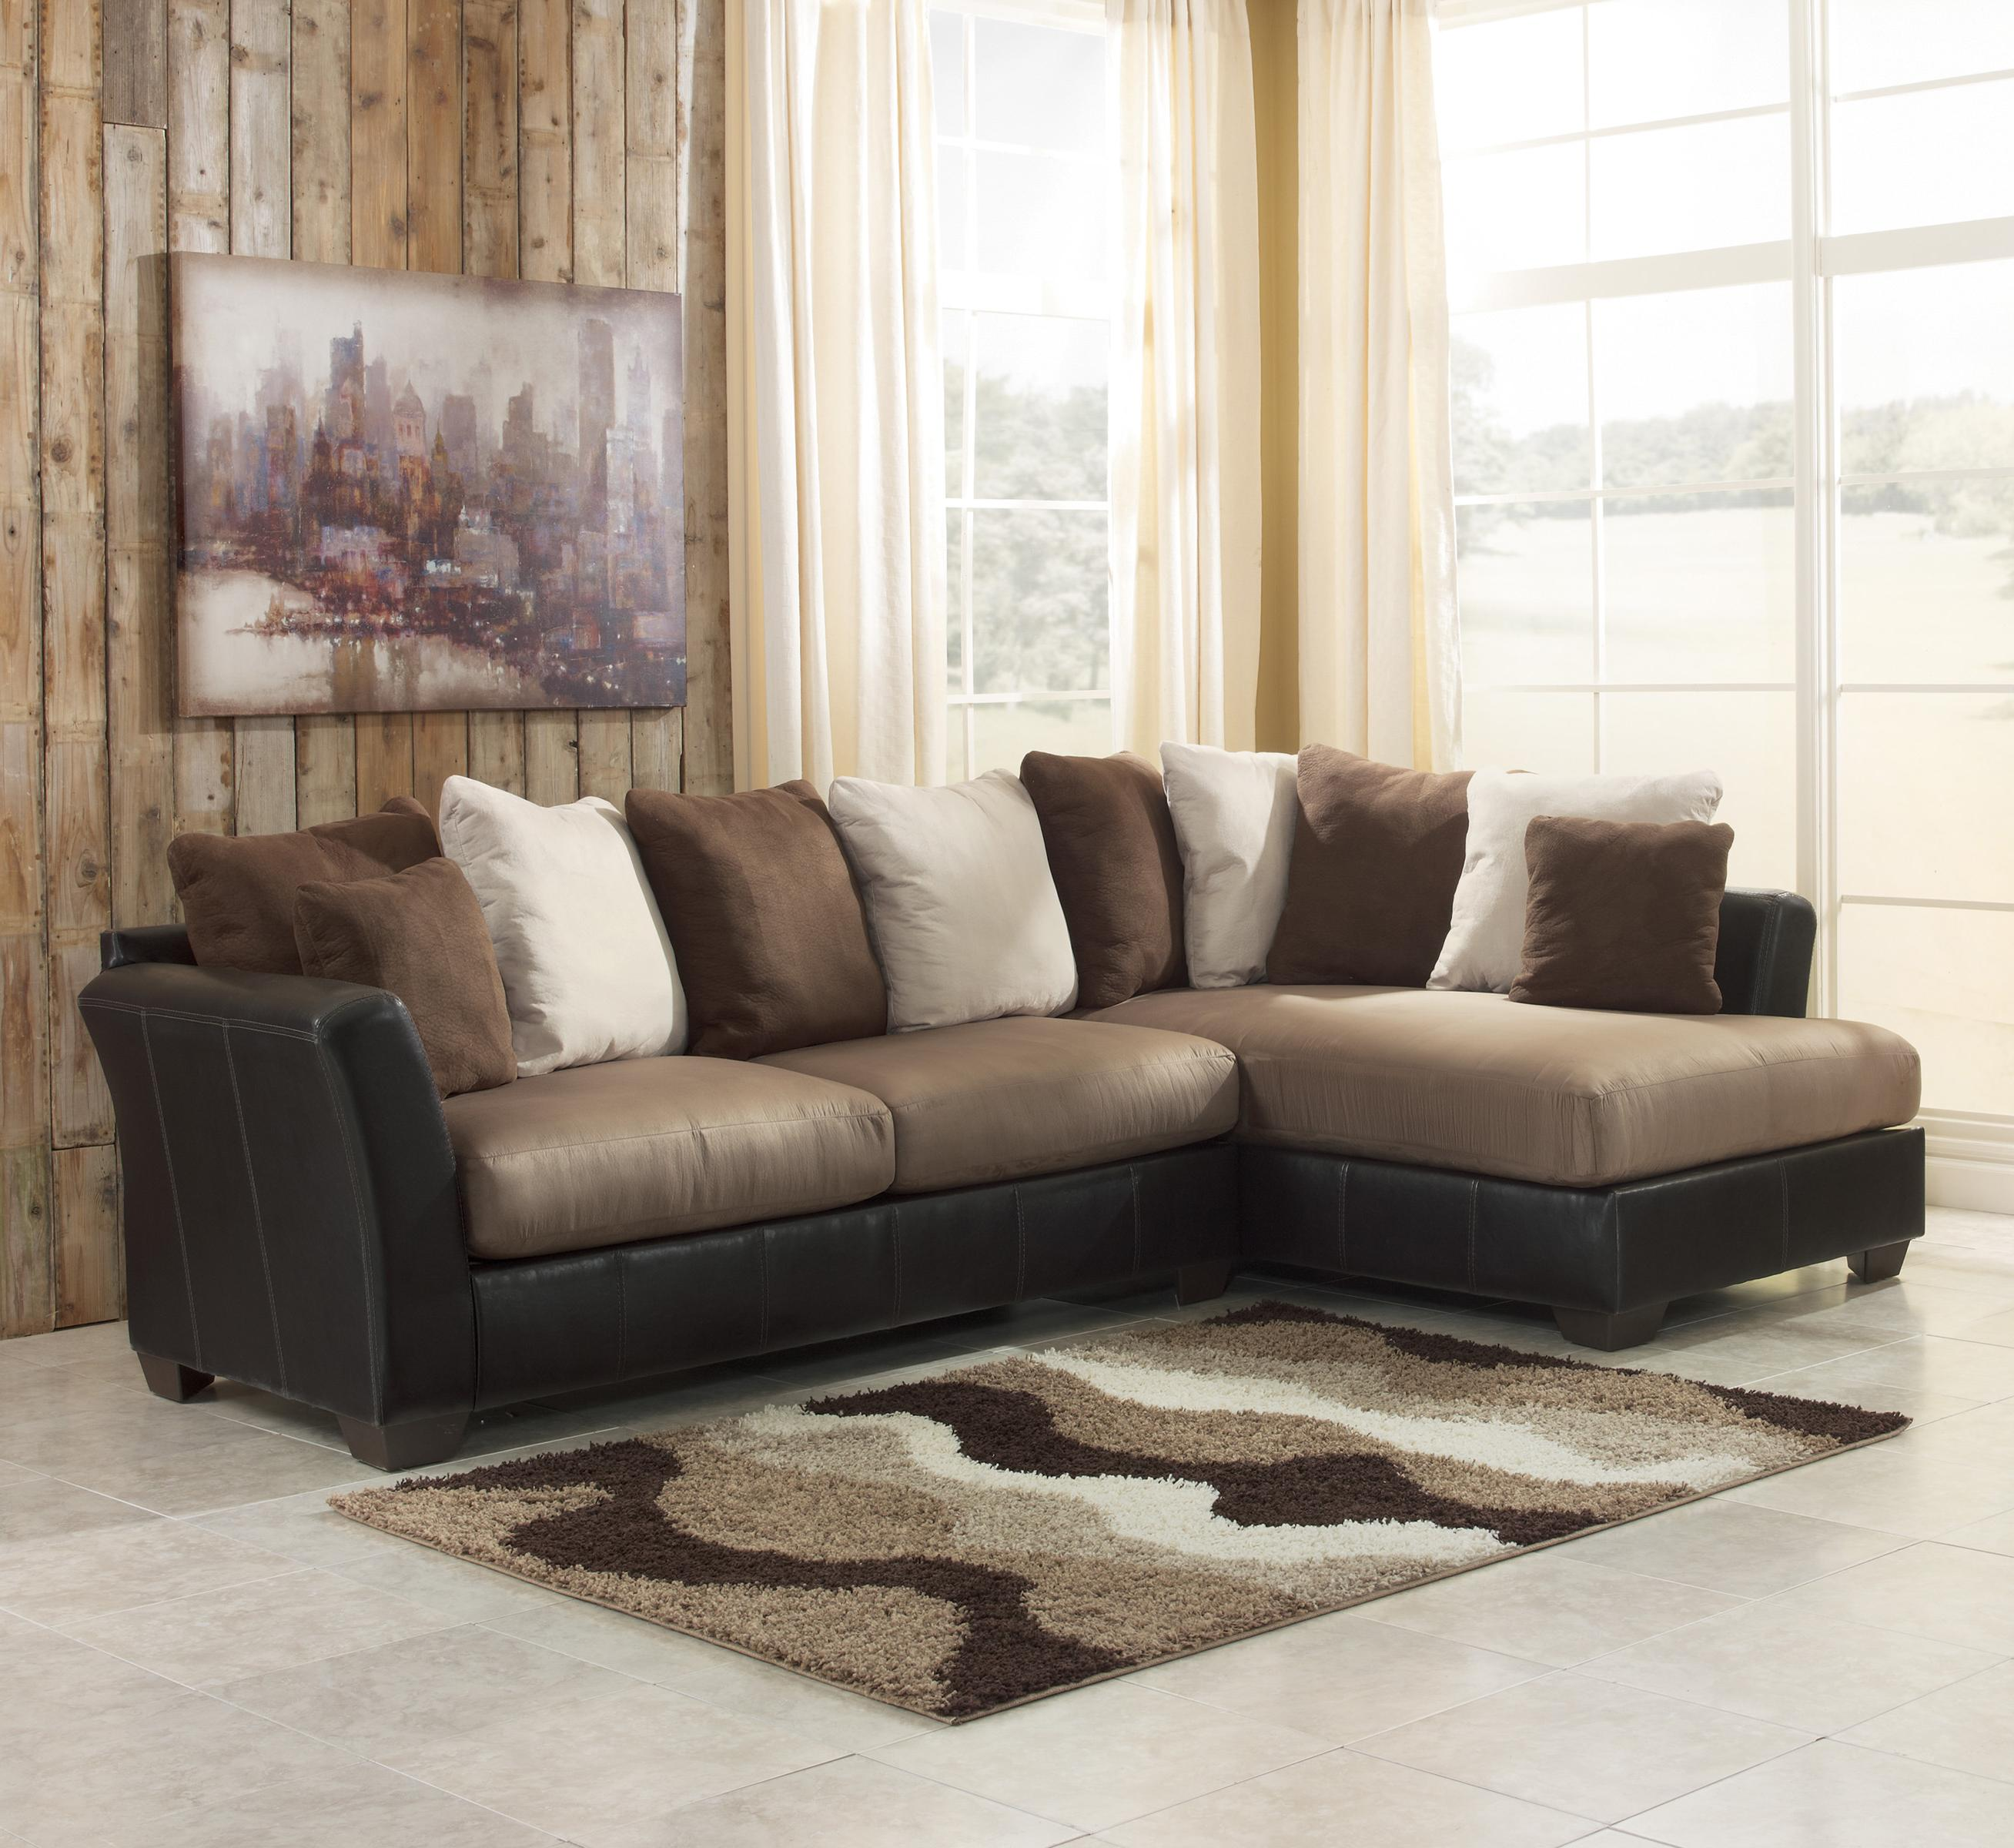 Benchcraft Masoli - Mocha 2-Piece Sectional with Chaise - Item Number: 1420166+17